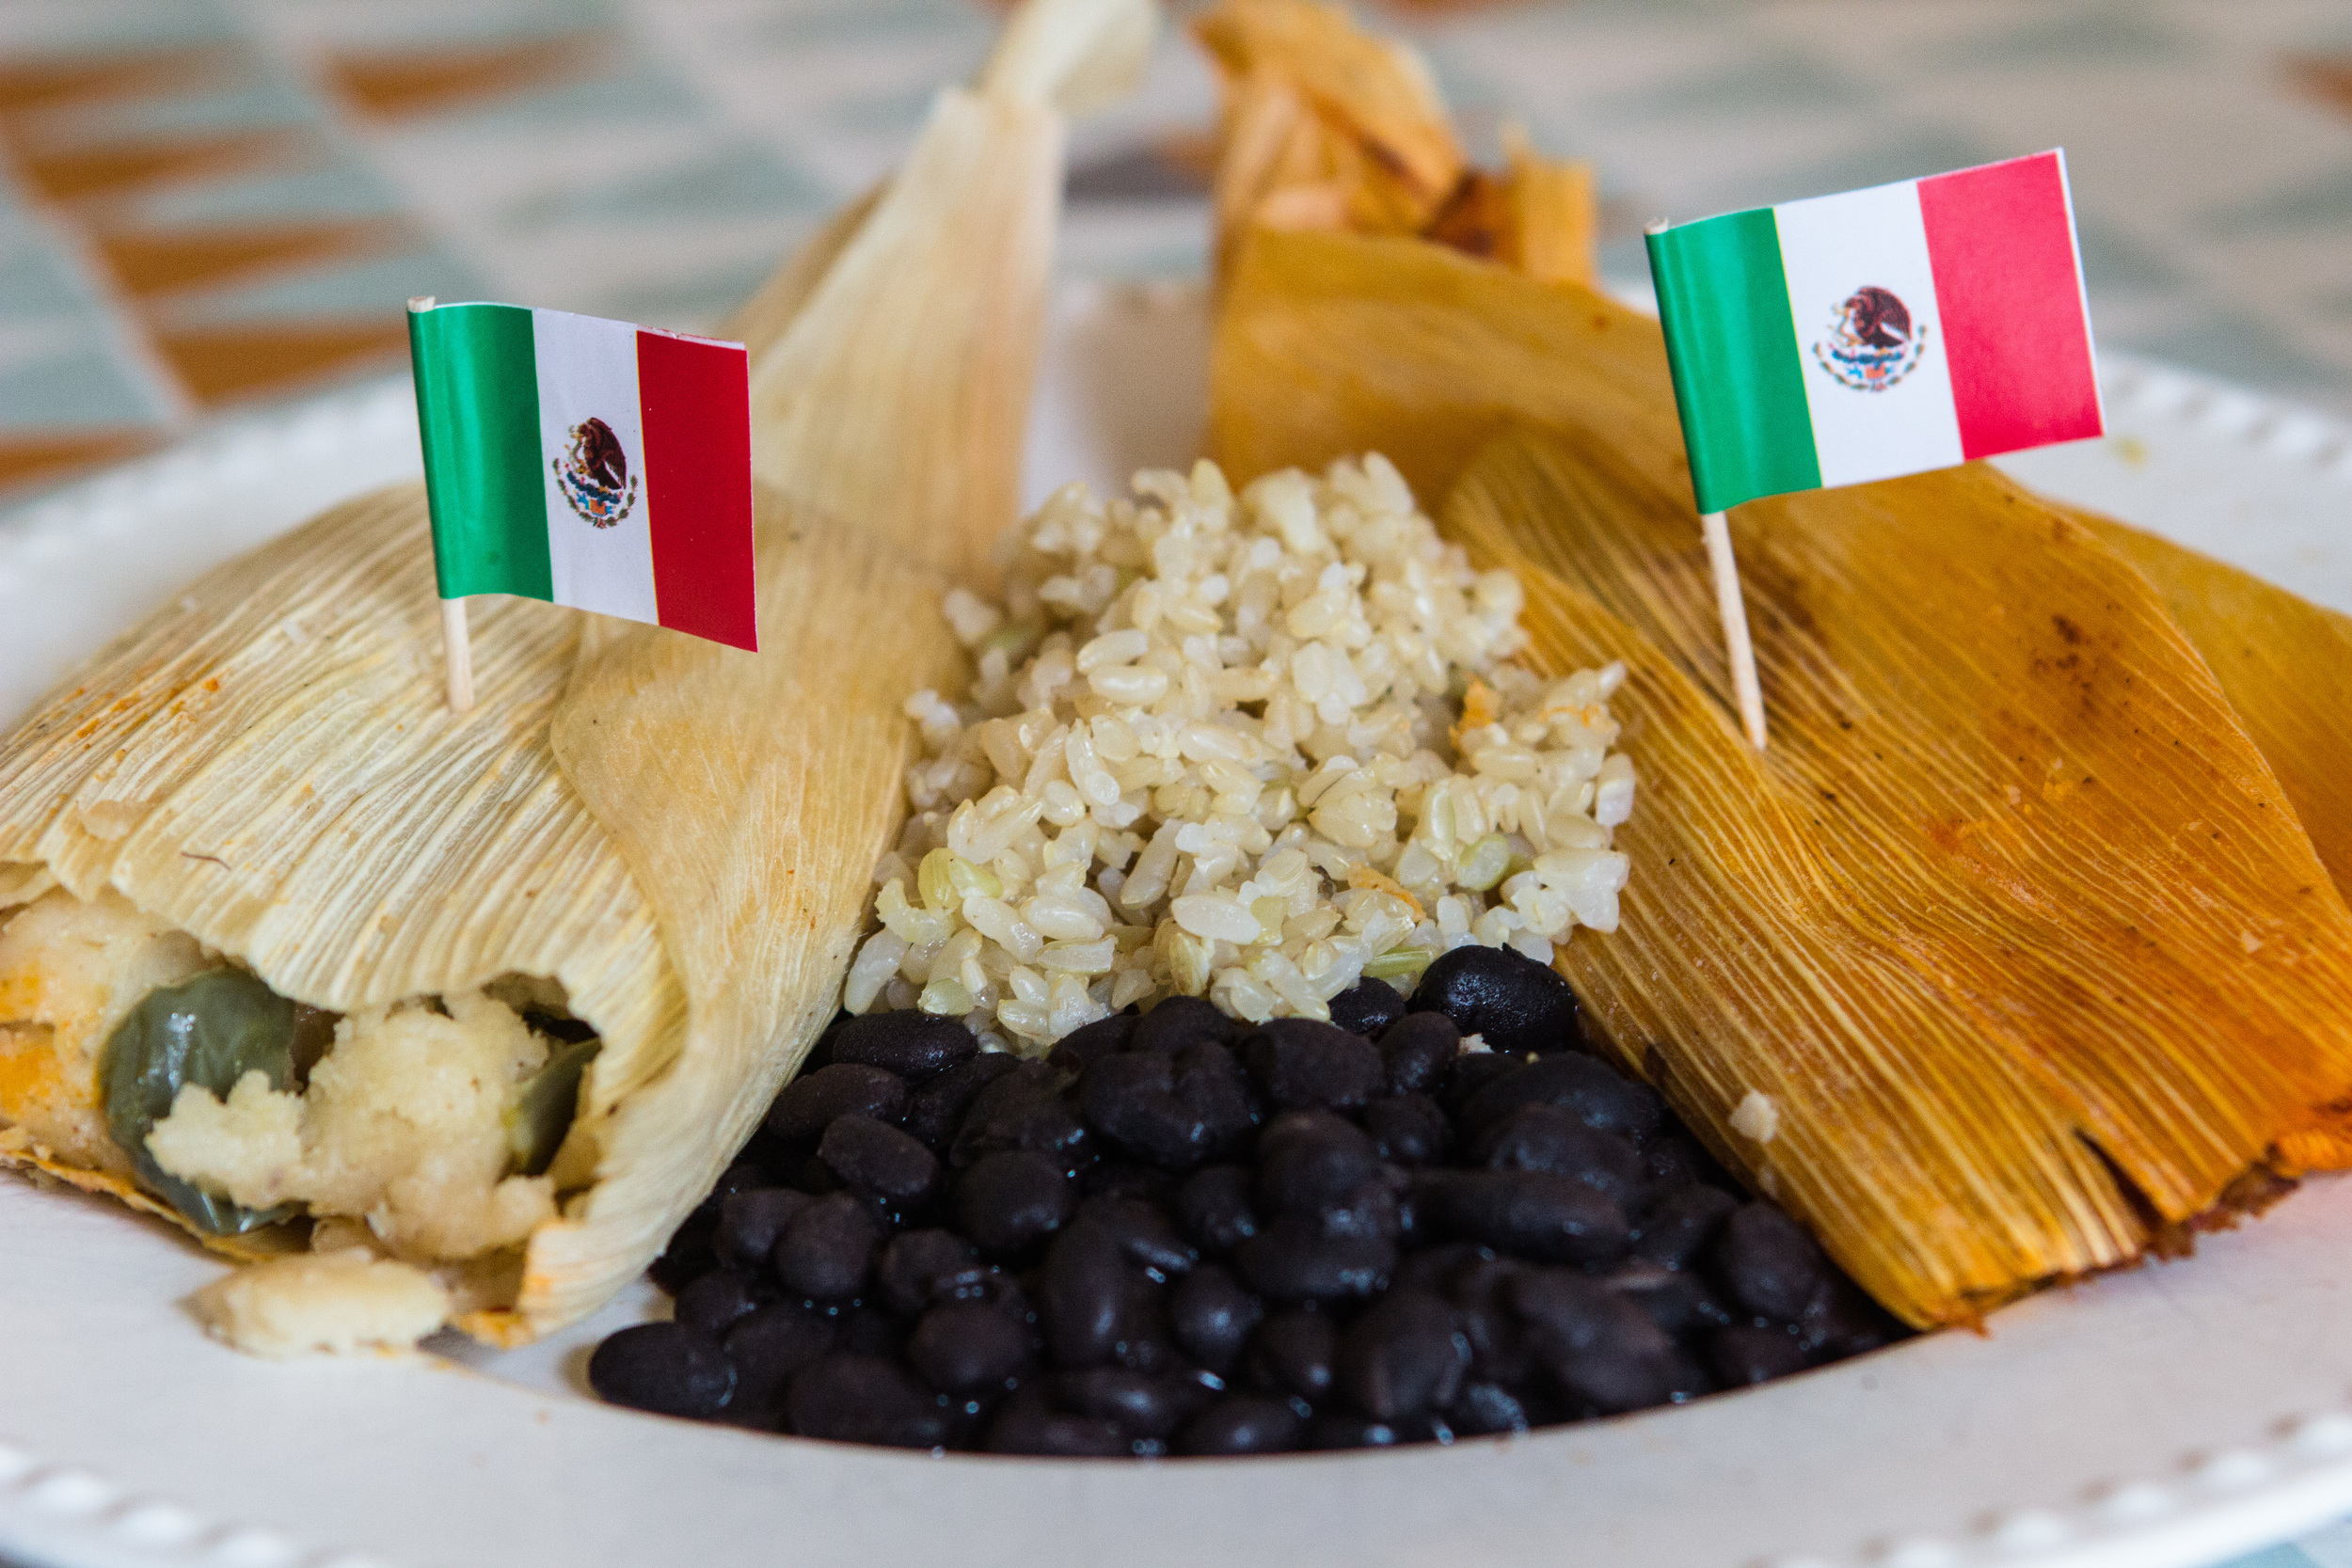 Tamales, rice, and beans